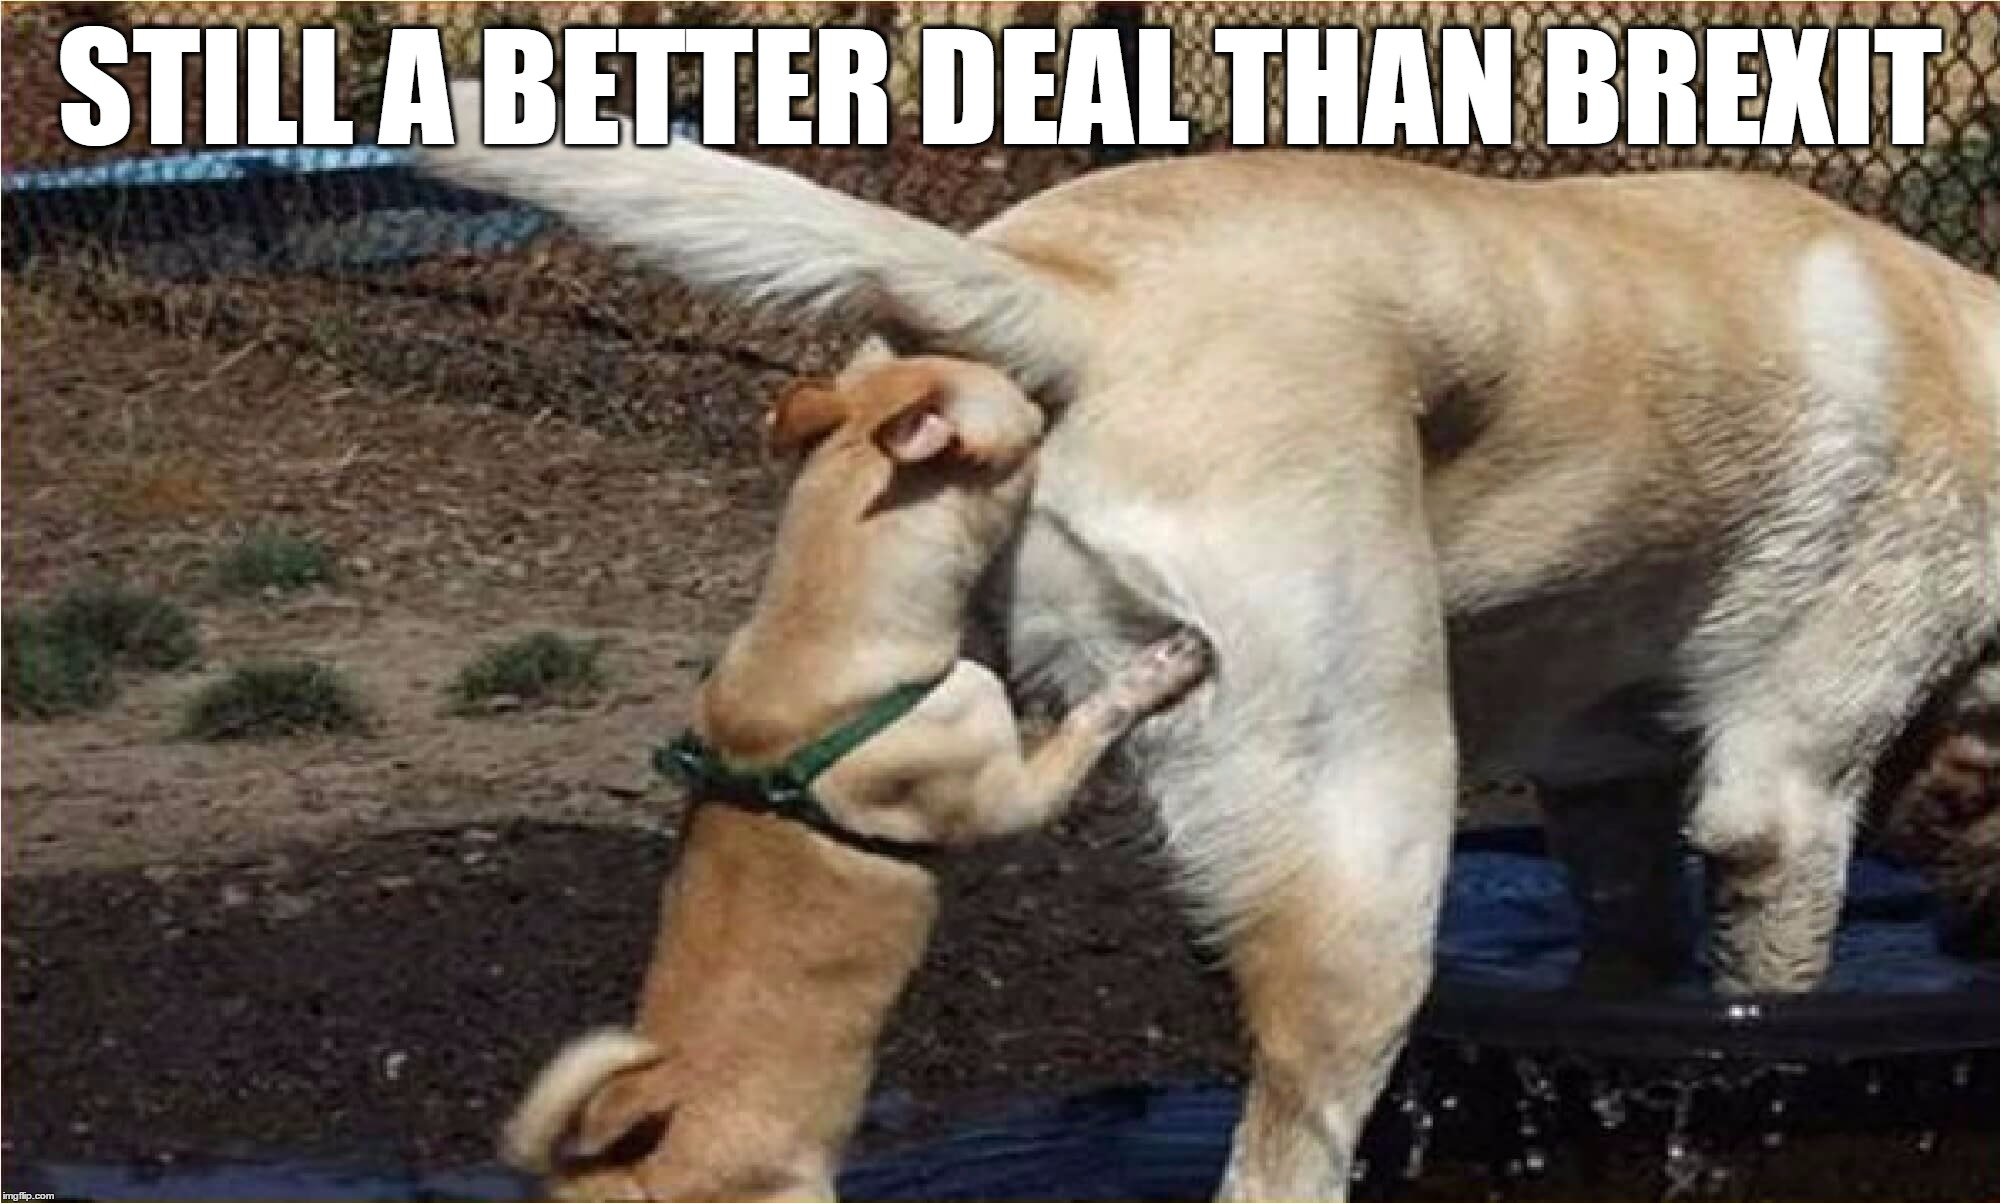 Still a Better Deal than Brexit | STILL A BETTER DEAL THAN BREXIT | image tagged in brexit,dog,shit,better,deal | made w/ Imgflip meme maker